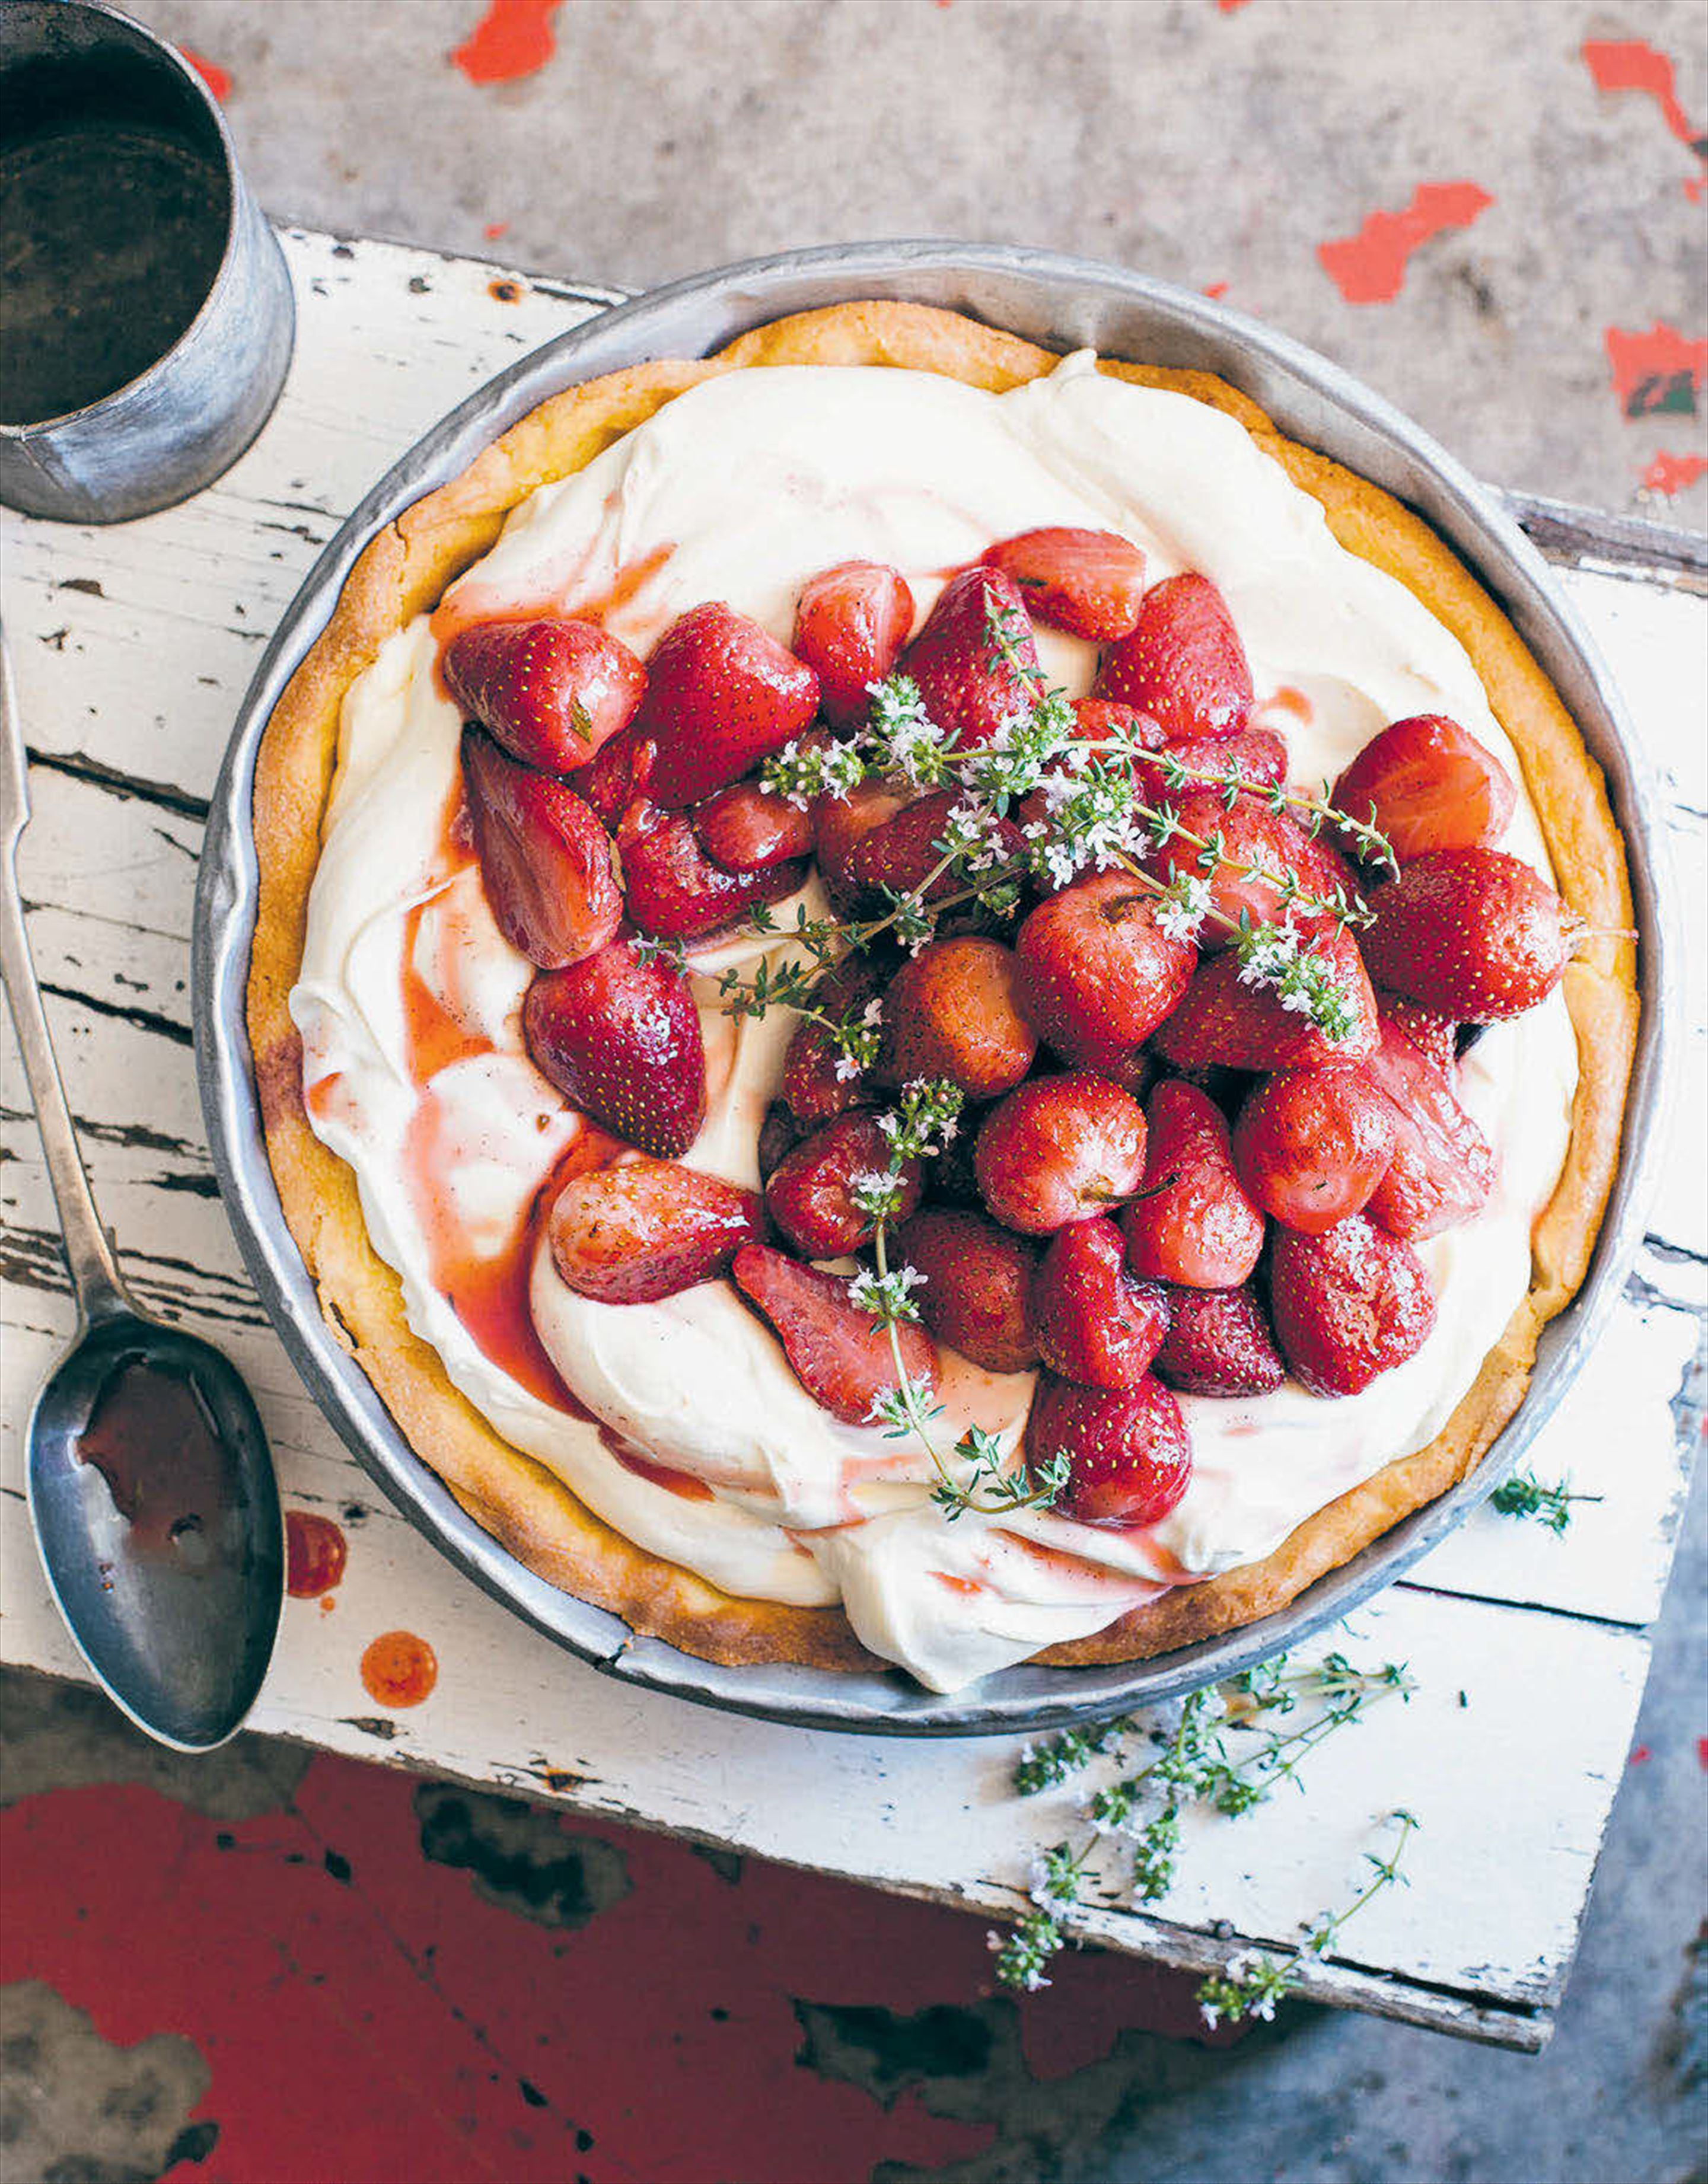 Roasted strawberries and cream pie